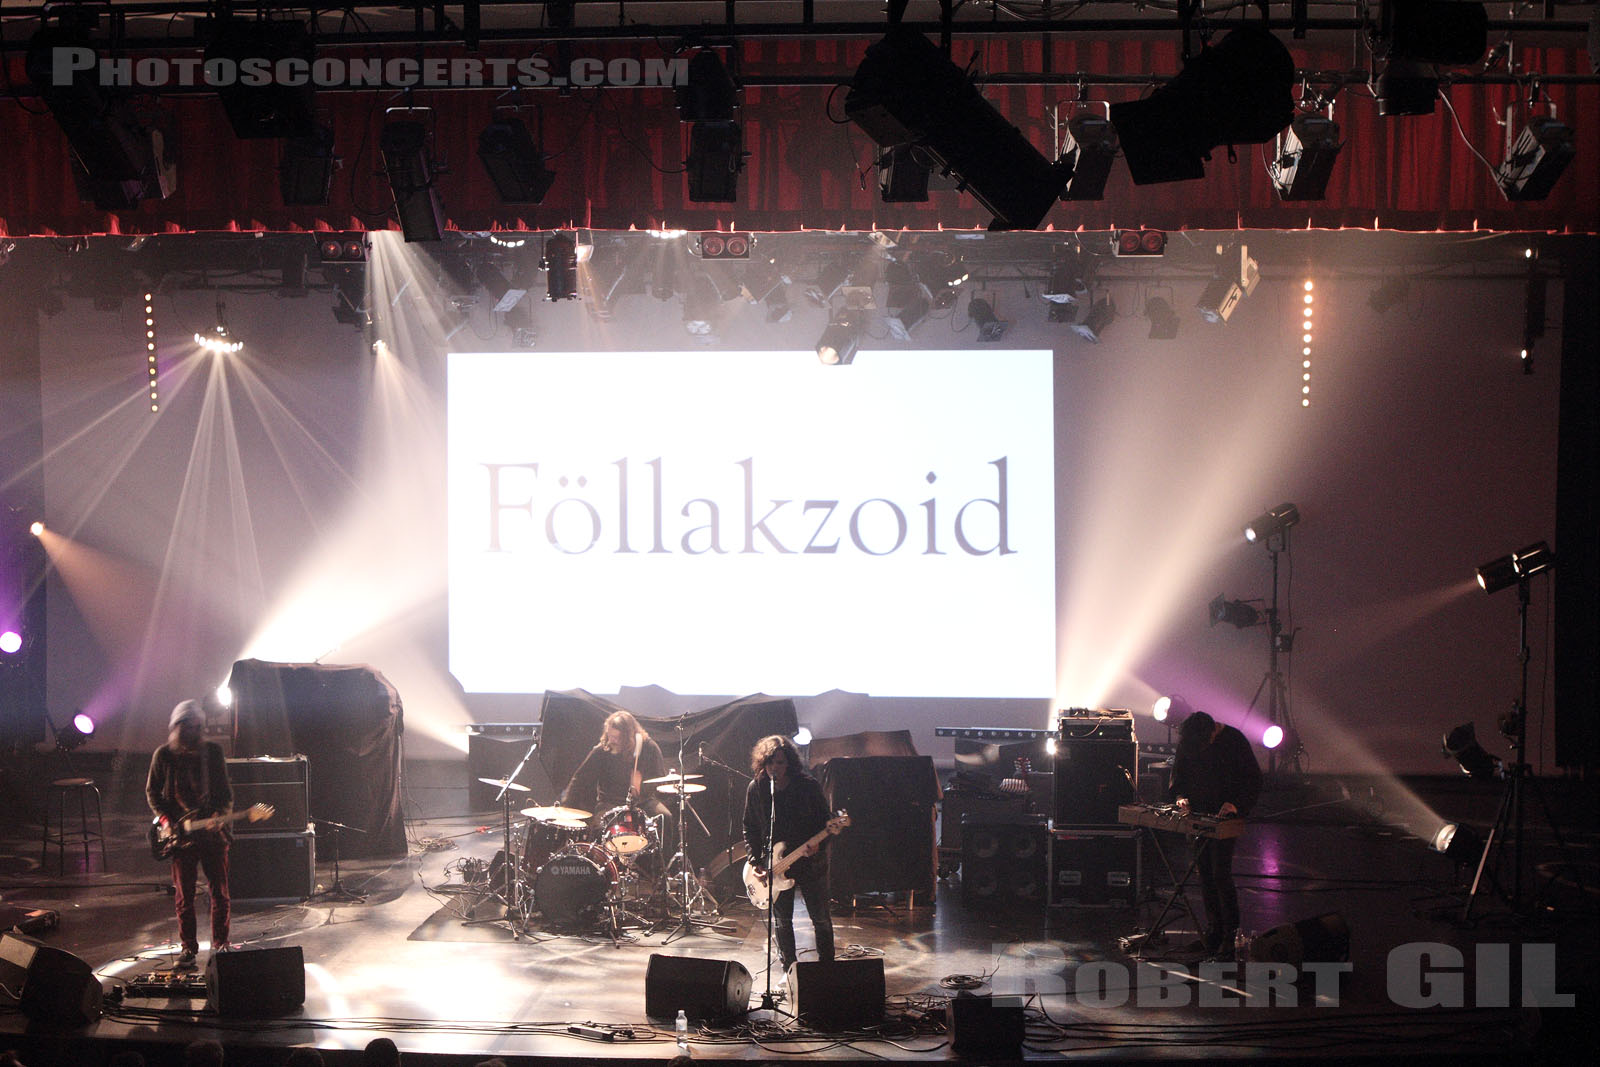 FOLLAKZOID - 2013-11-24 - BOULOGNE-BILLANCOURT - Carre Bellefeuille